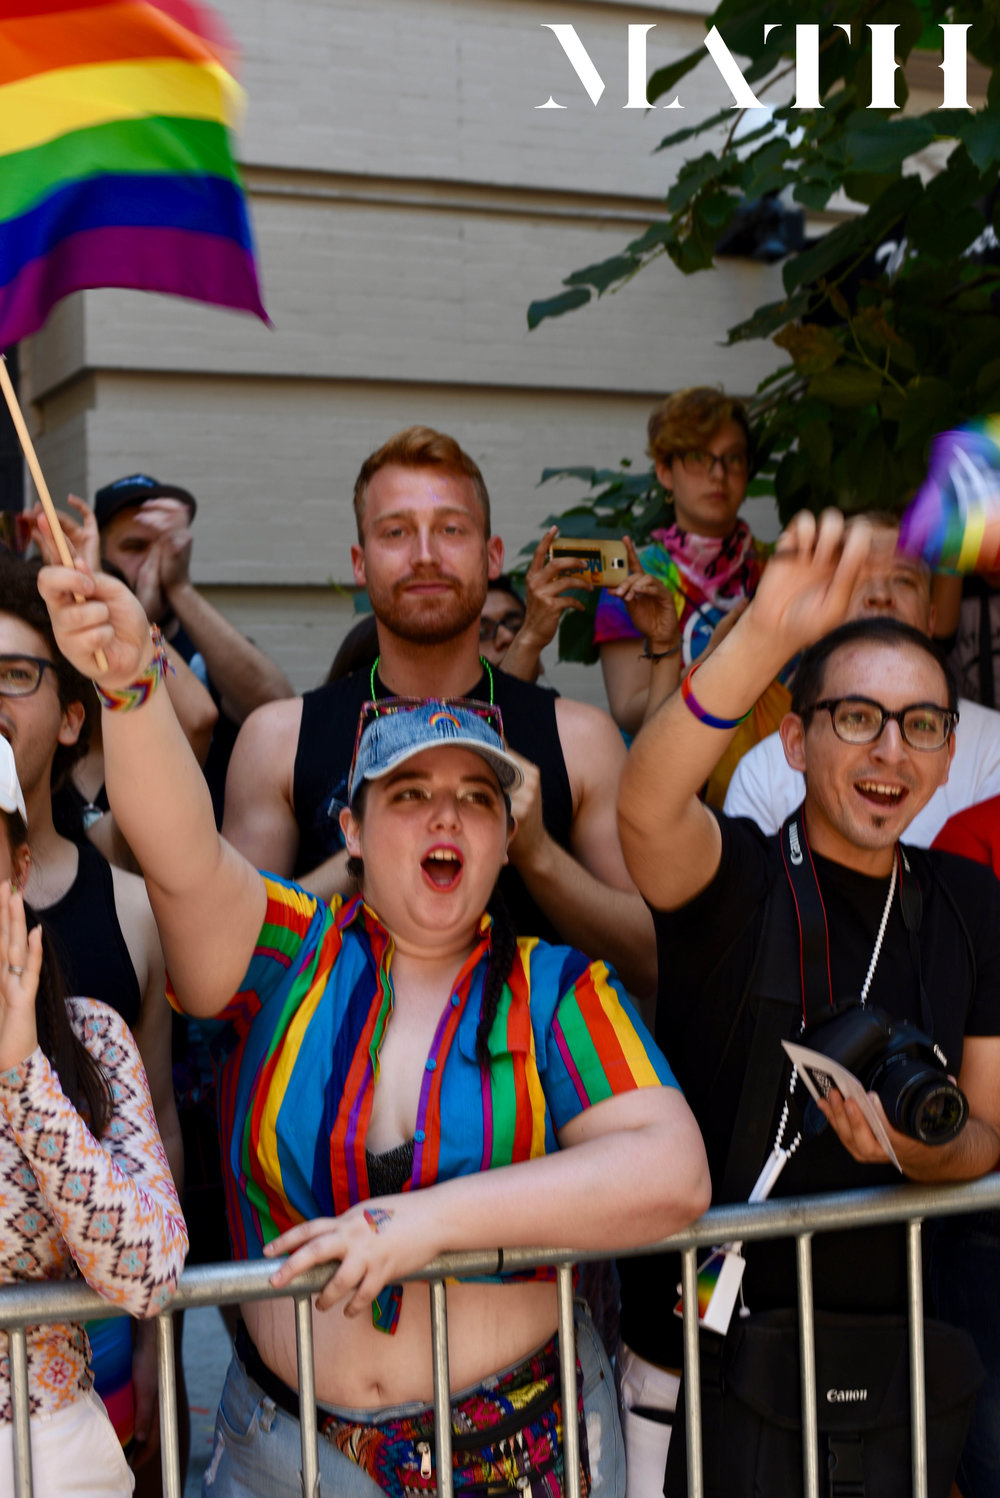 NYC Pride_Ginger Hollander 6.jpg